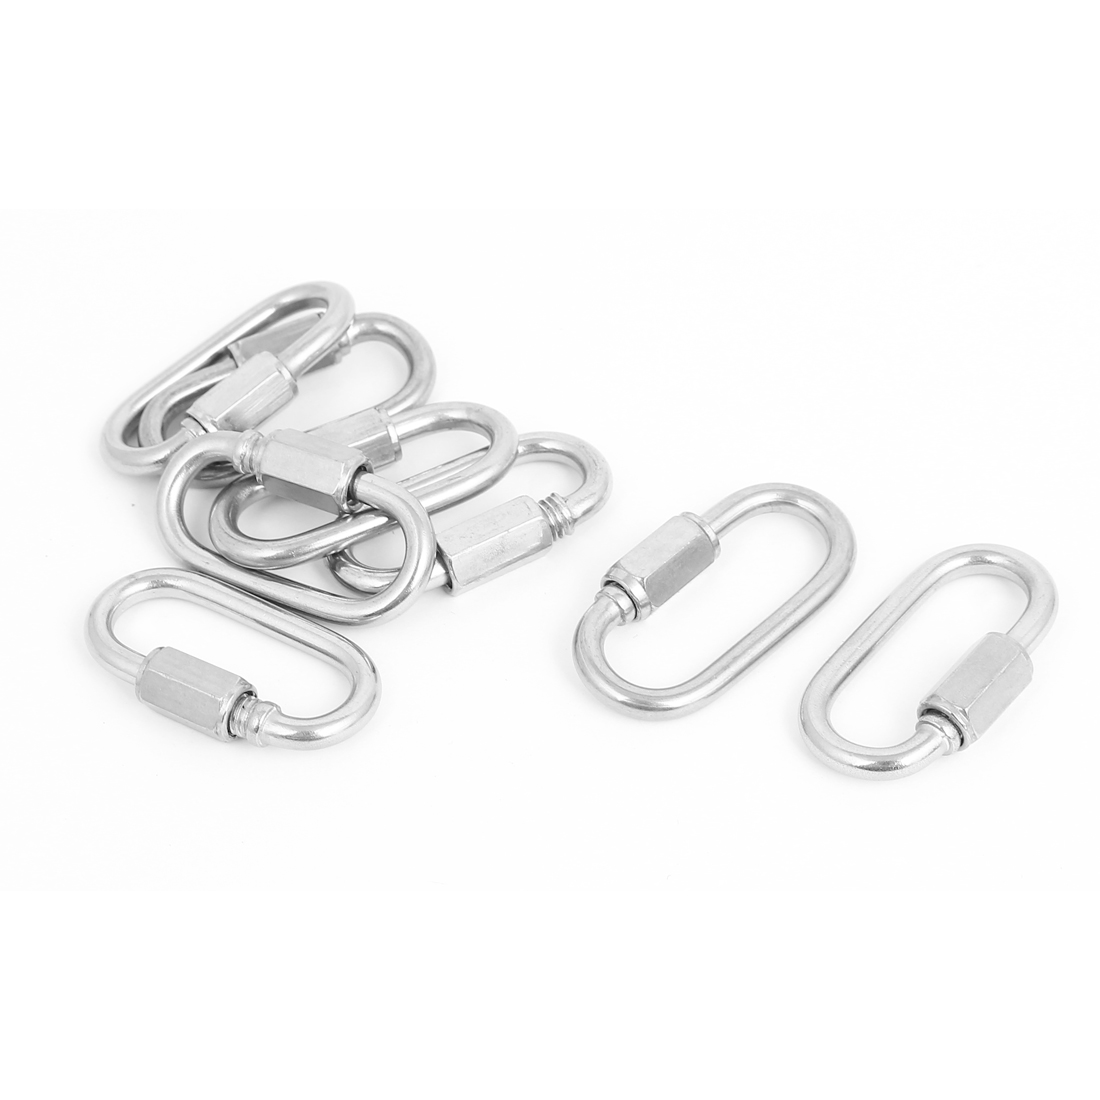 4mm Thickness Stainless Steel Quick Links Carabiners 8 Pcs